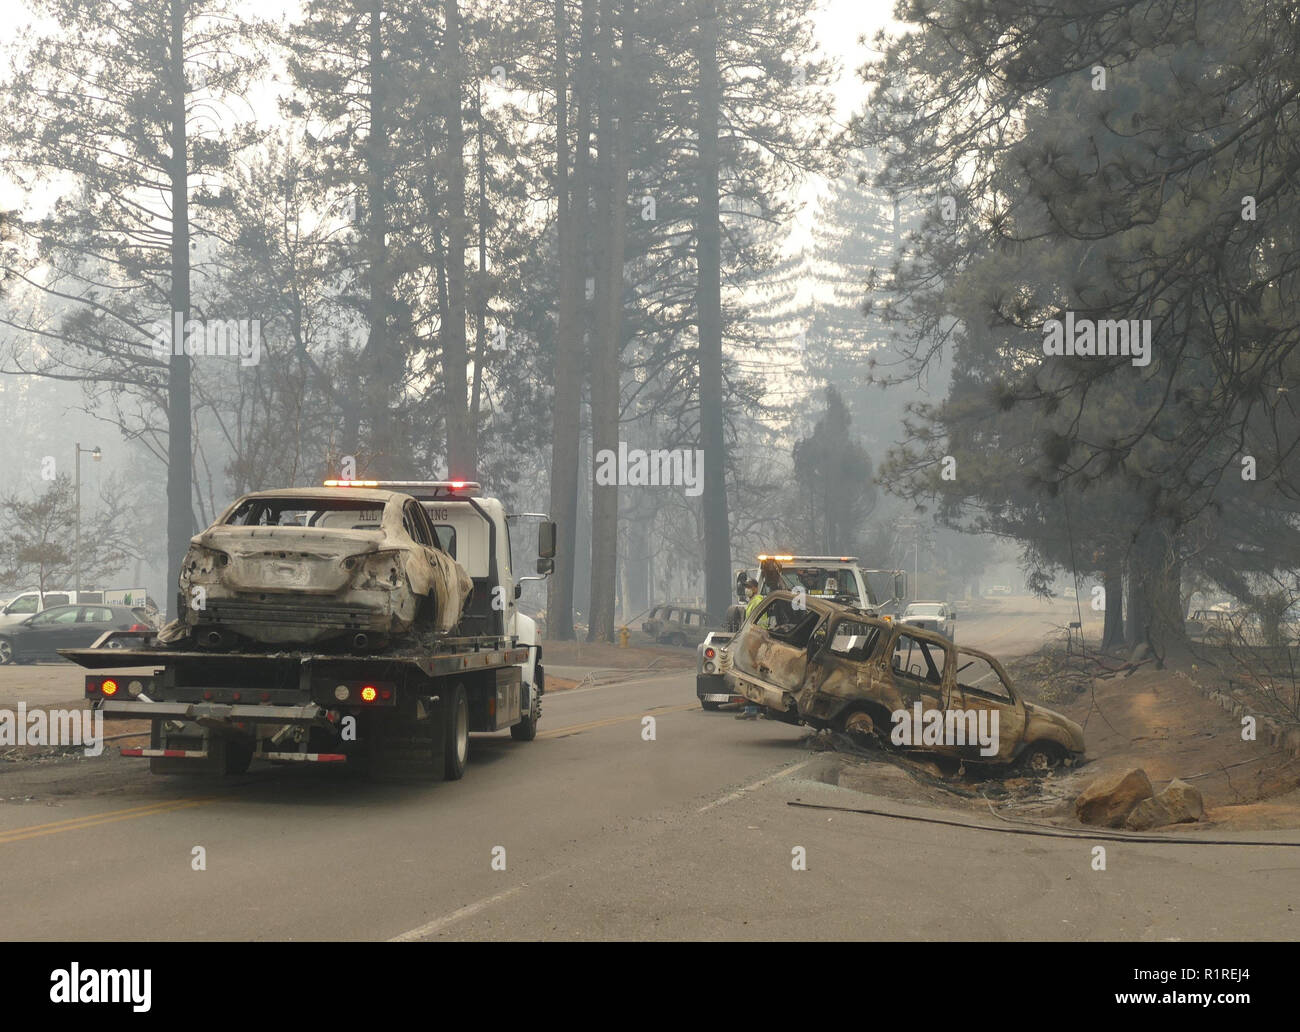 Paradise, USA. 13th Nov, 2018. Burnt out cars are removed from the roadside after the forest fire, the so-called 'camp' fire. Paradise has become a ghost town. Only fire engines and fire engines drive through the spooky landscape. Residents are not allowed to return for the time being. (to dpa 'Paradise as hell on earth - 'Will create a new church' of 14.11.2018) Credit: Barbara Munker/dpa/Alamy Live News - Stock Image